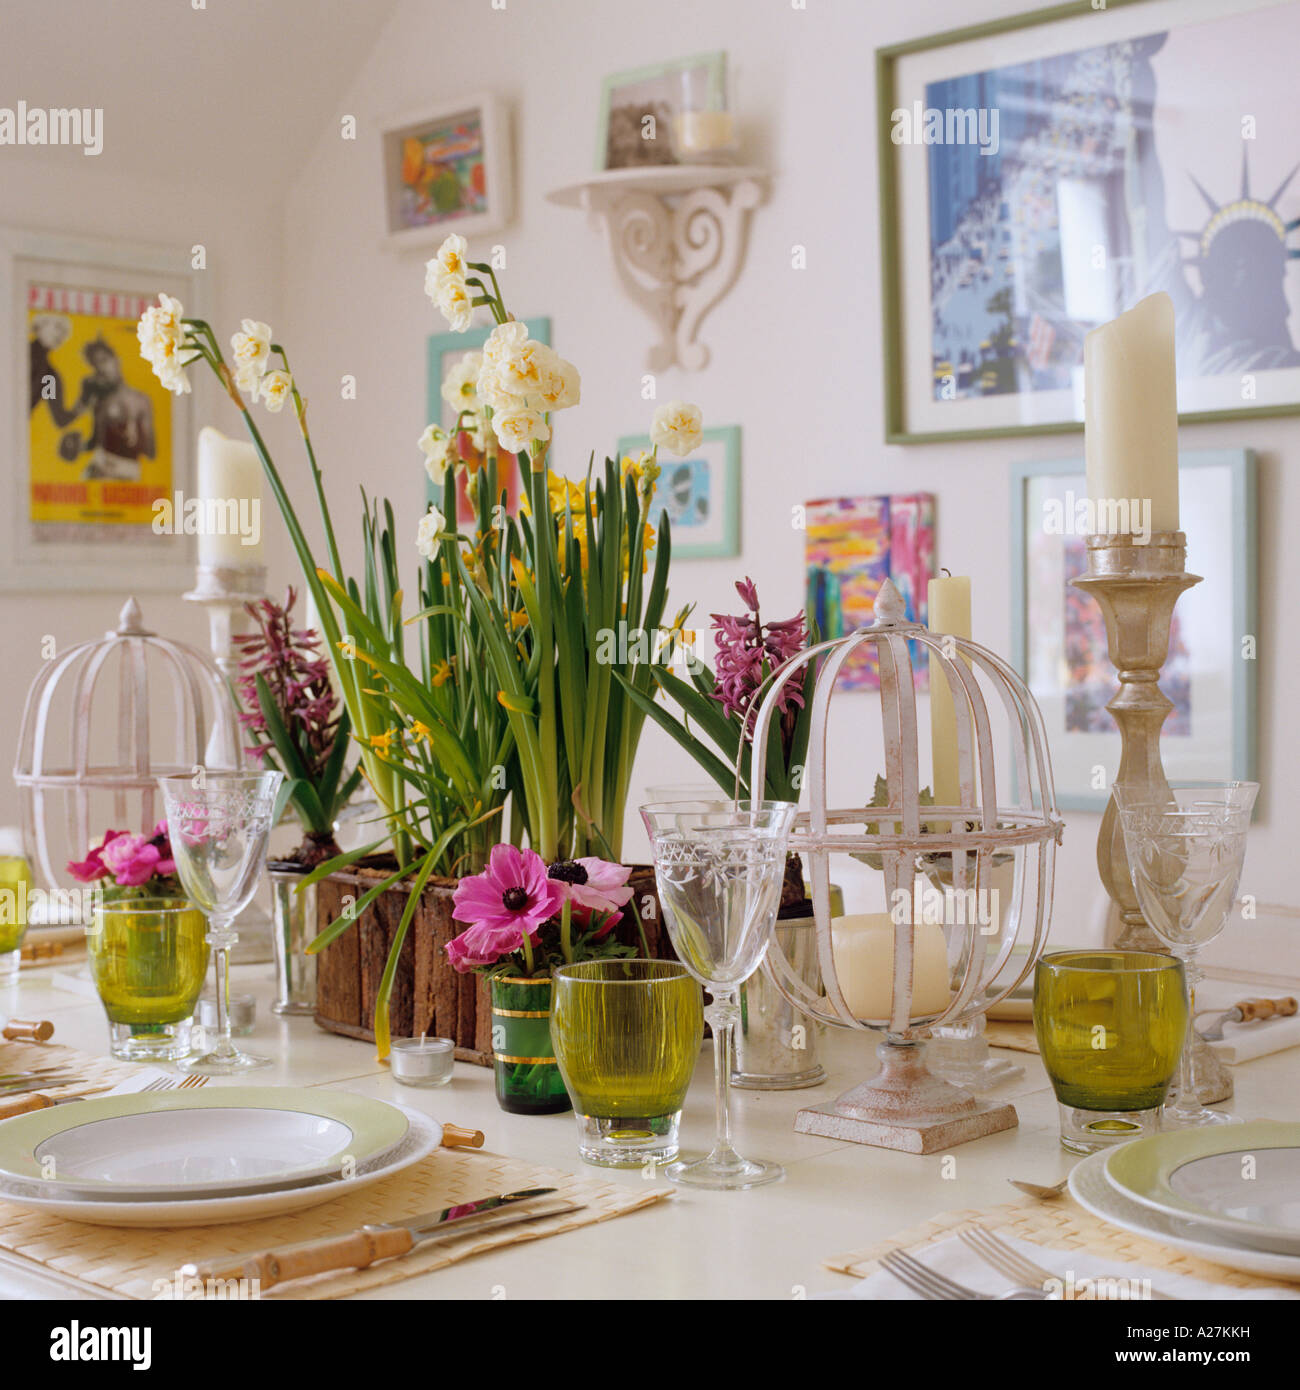 Set table decorated with daffodils and candles in London townhouse - Stock Image